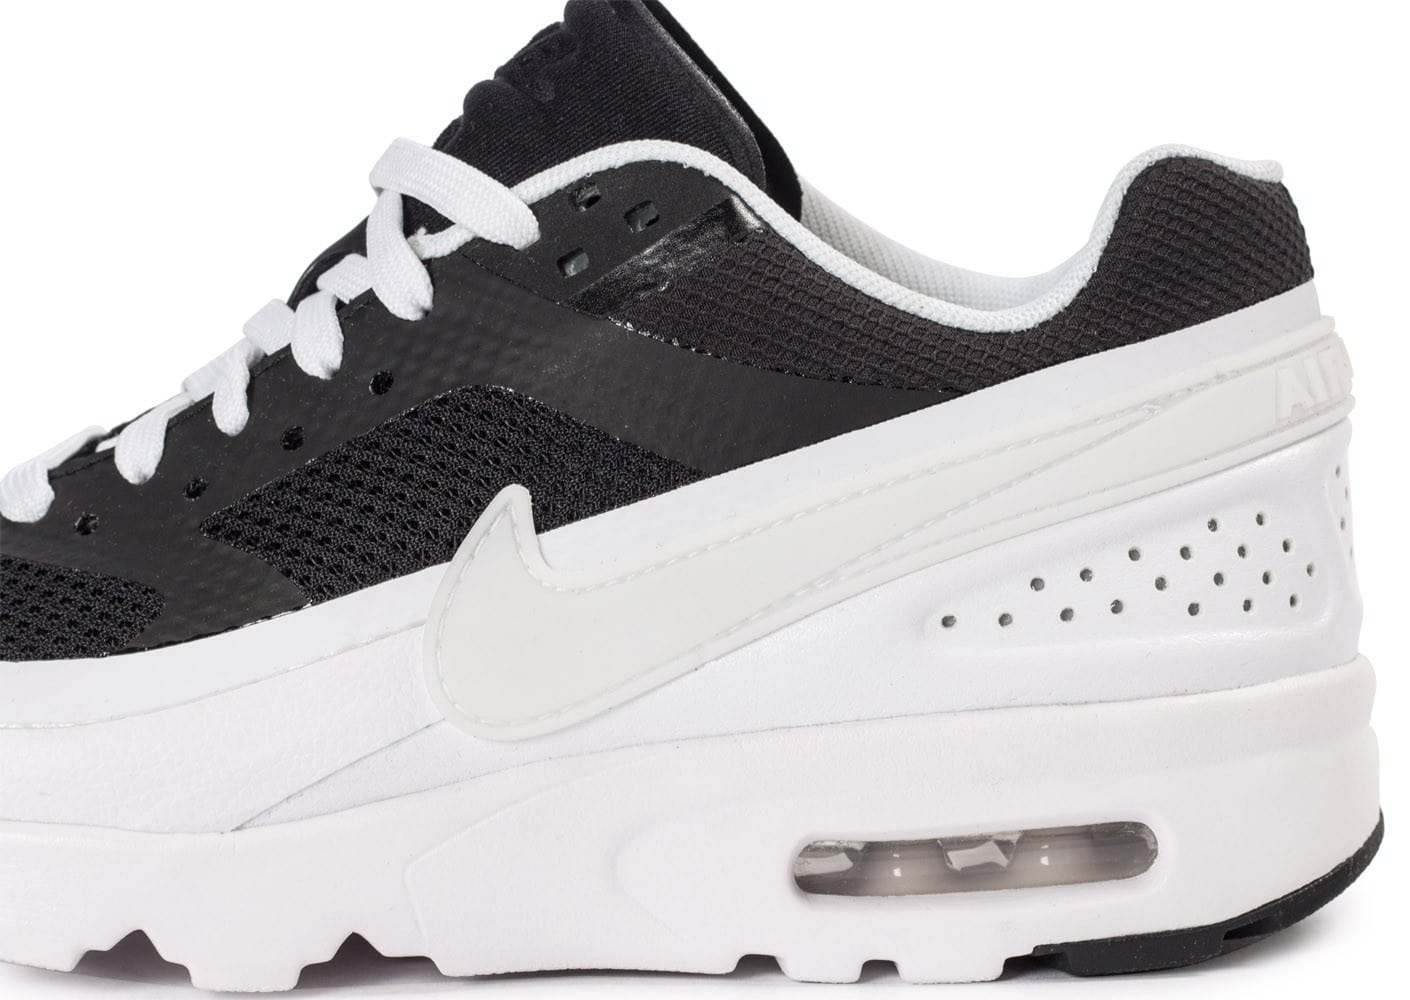 Nike Black Baskets White Femme Chaussures Ultra Max Bw Air W bg76fyY